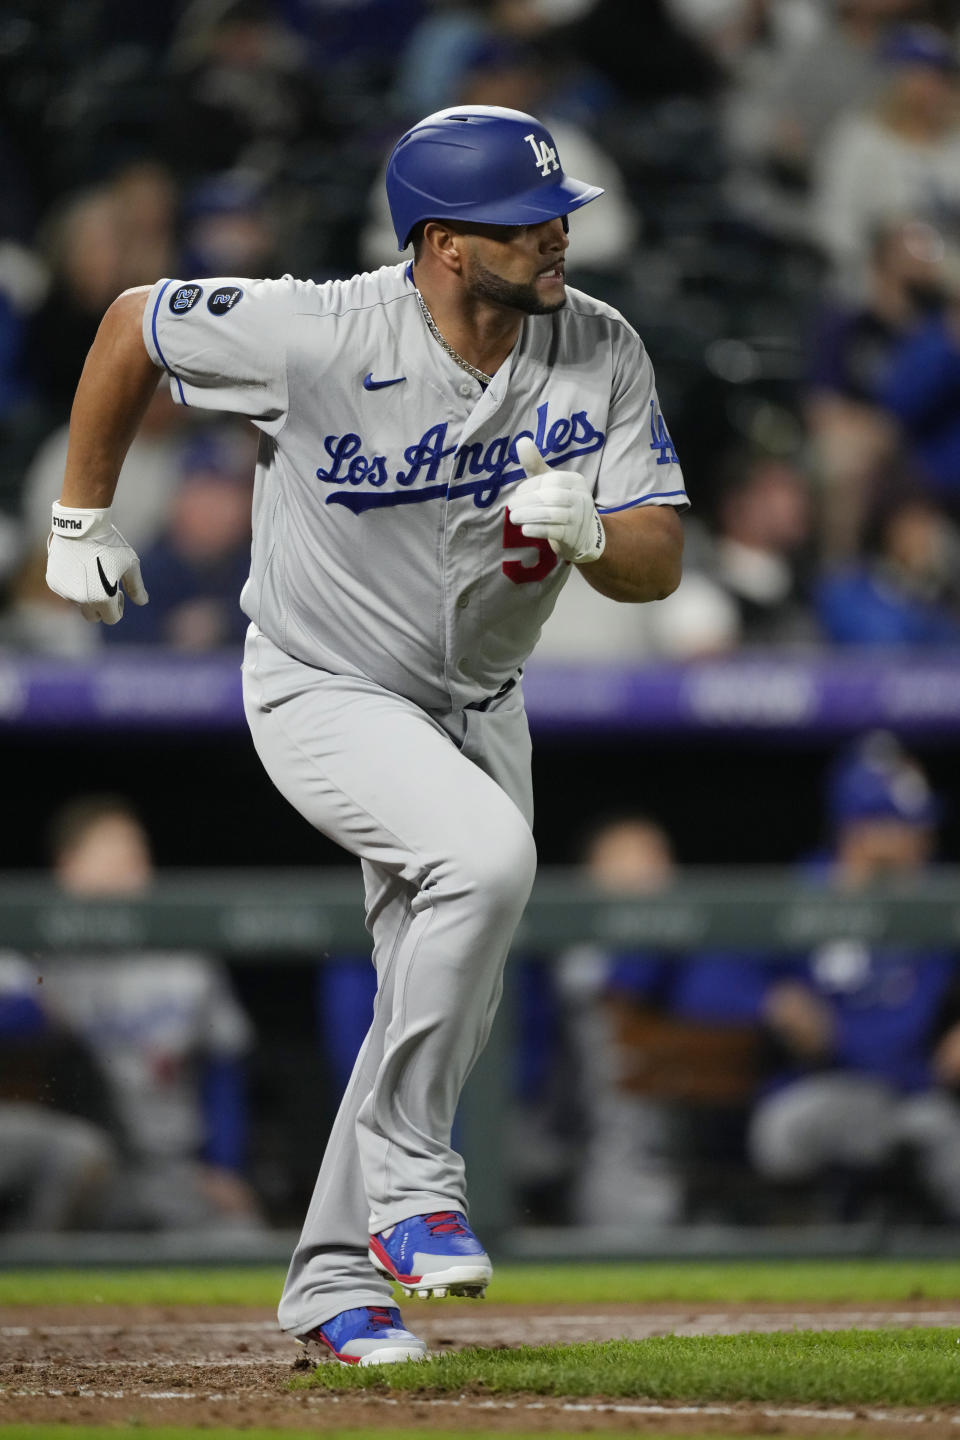 Los Angeles Dodgers pinch-hitter Albert Pujols heads up the first-base line after hitting an RBI-single off Colorado Rockies relief pitcher Jhoulys Chacin in the 10th inning of a baseball game Tuesday, Sept. 21, 2021, in Denver. The Dodgers won 5-4. (AP Photo/David Zalubowski)